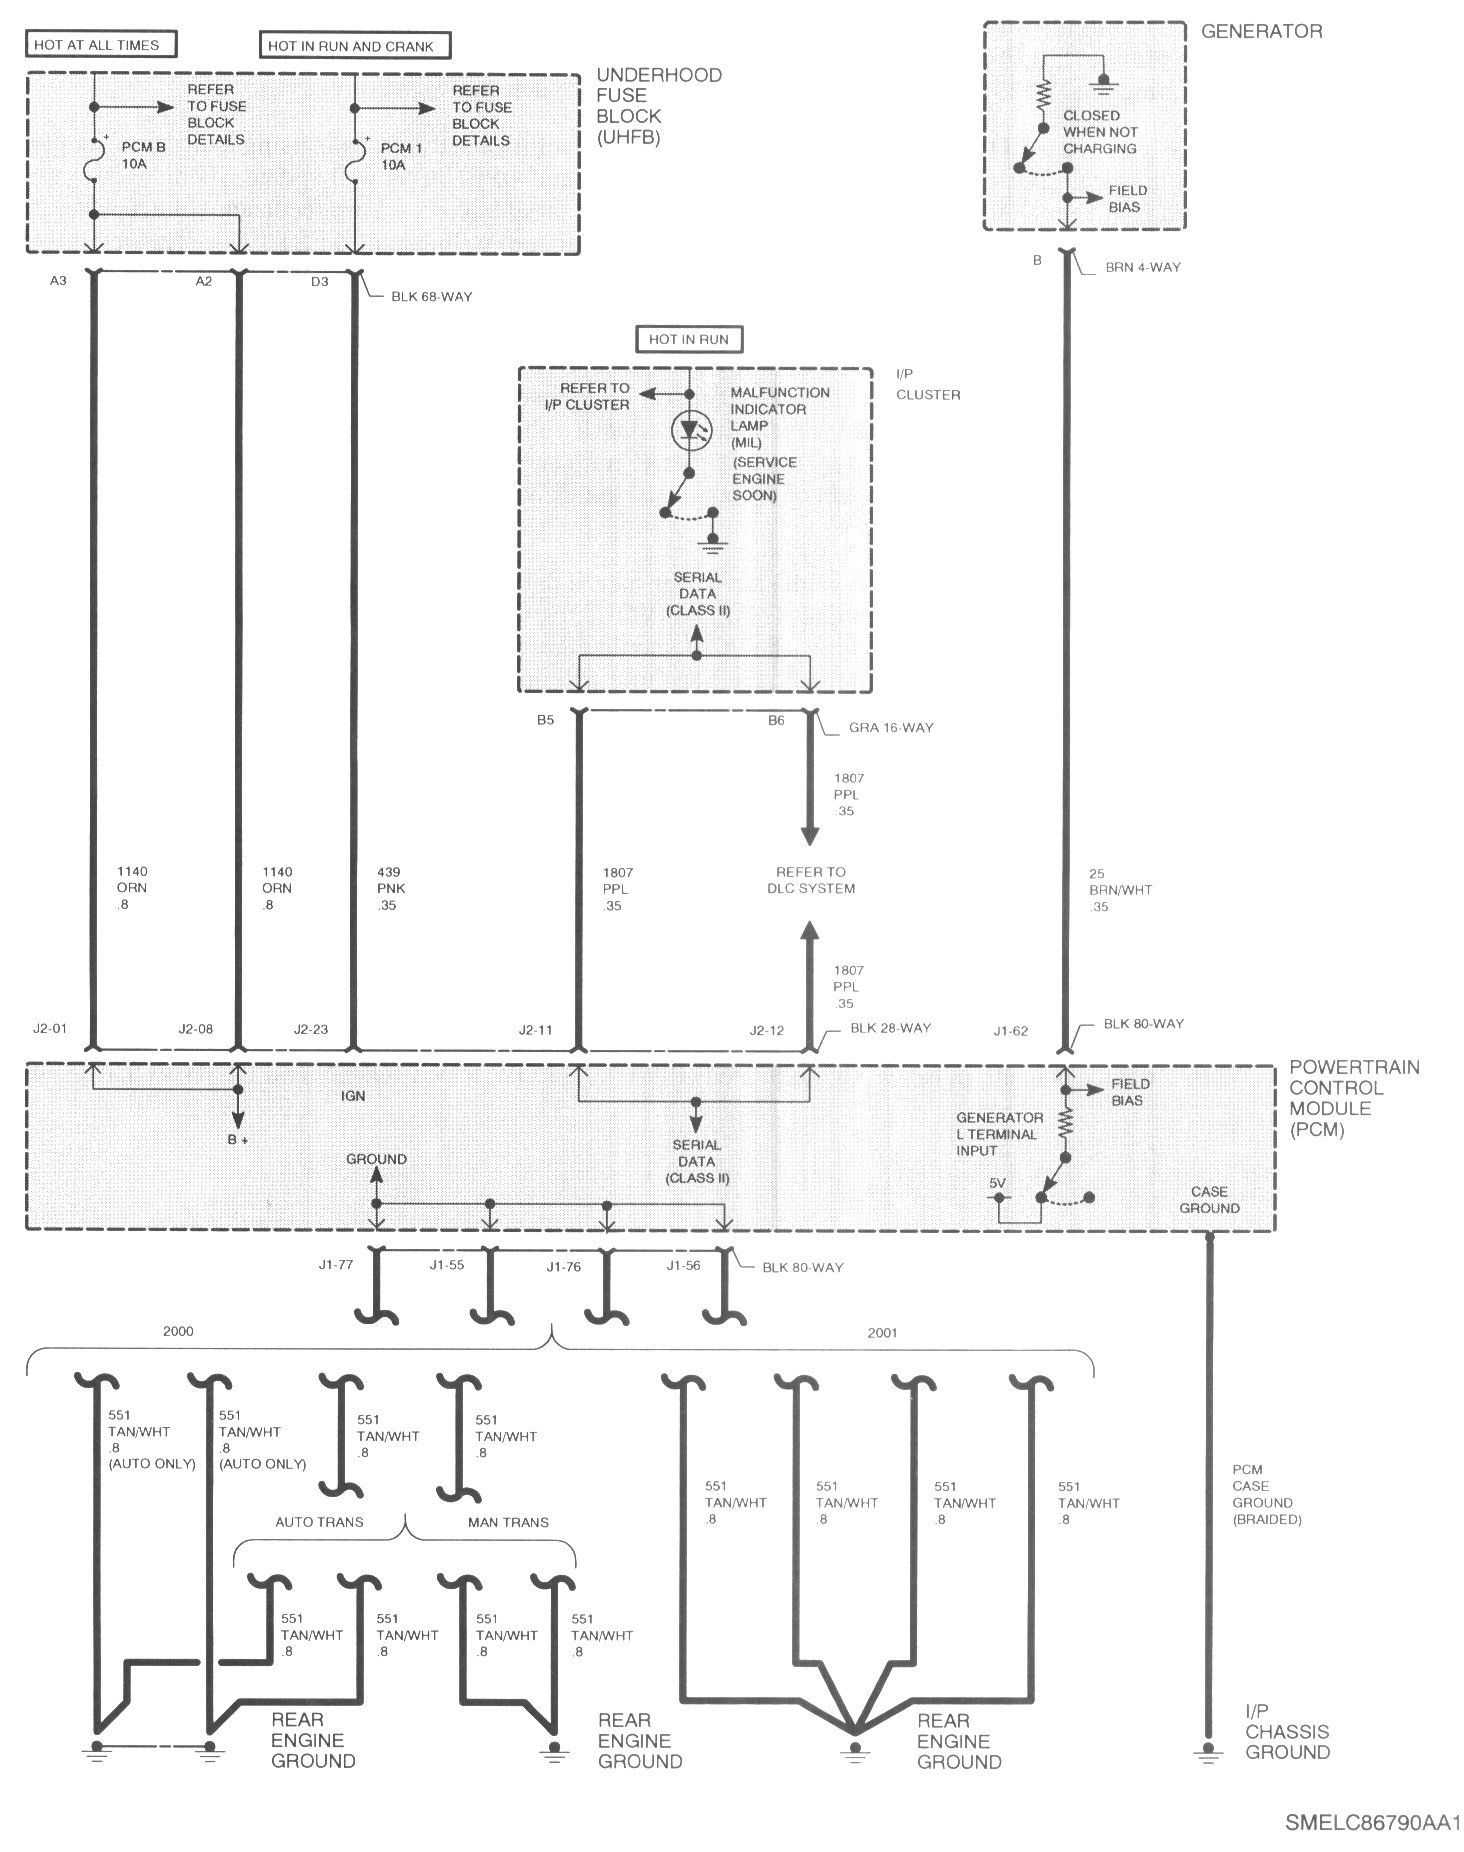 2000 Saturn Sl2 Radio Wiring Diagram from i.pinimg.com